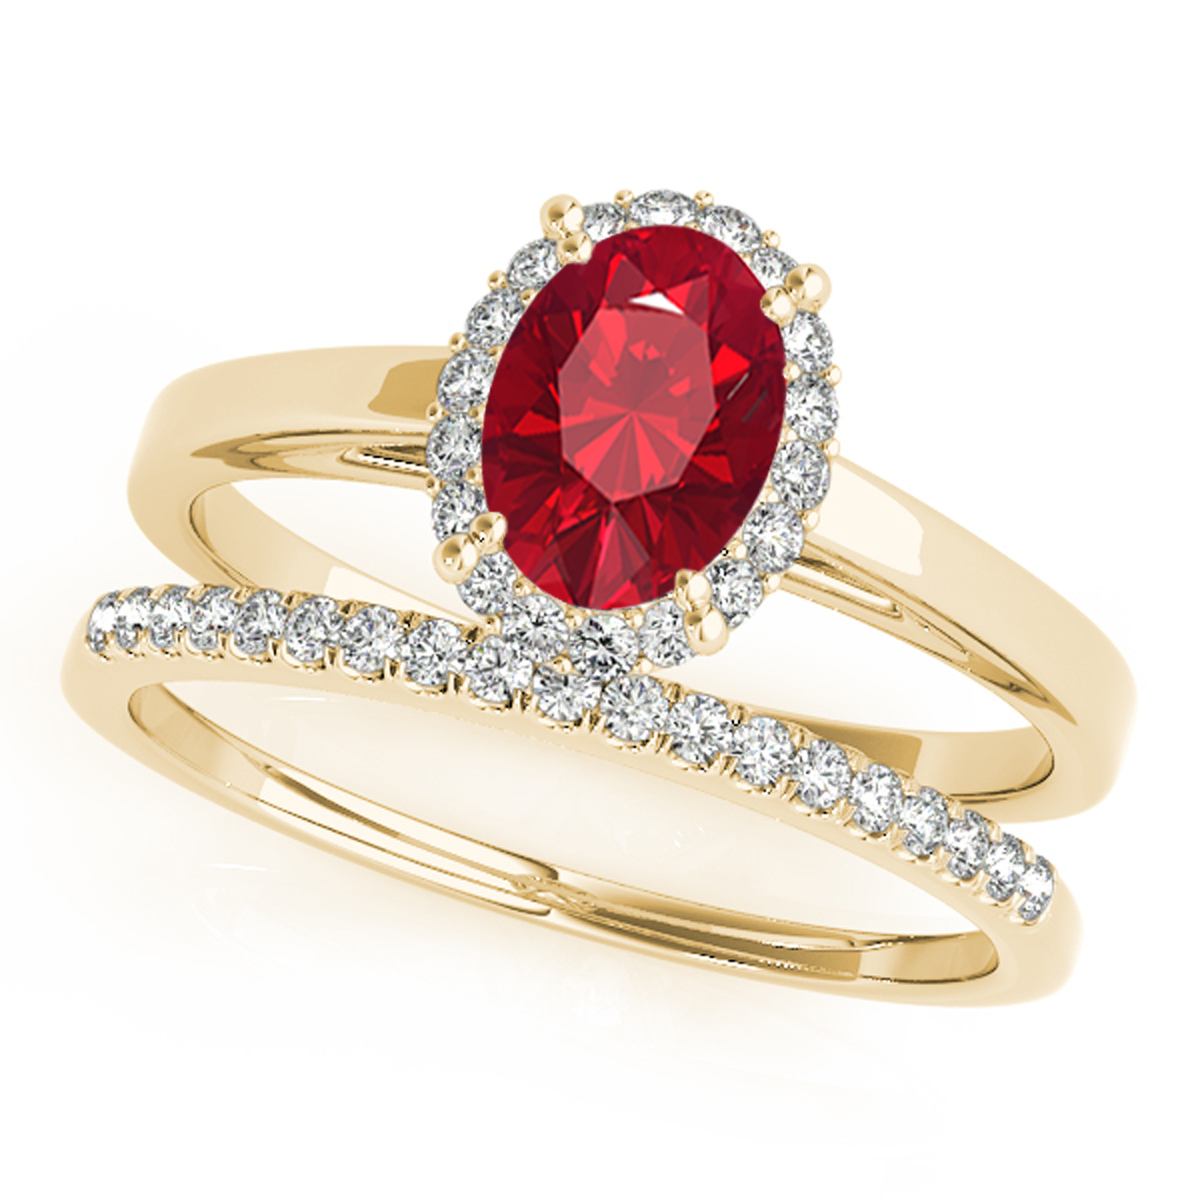 0.70 Ct. Created Ruby & Diamond Bridal Ring Set In 10K Gold